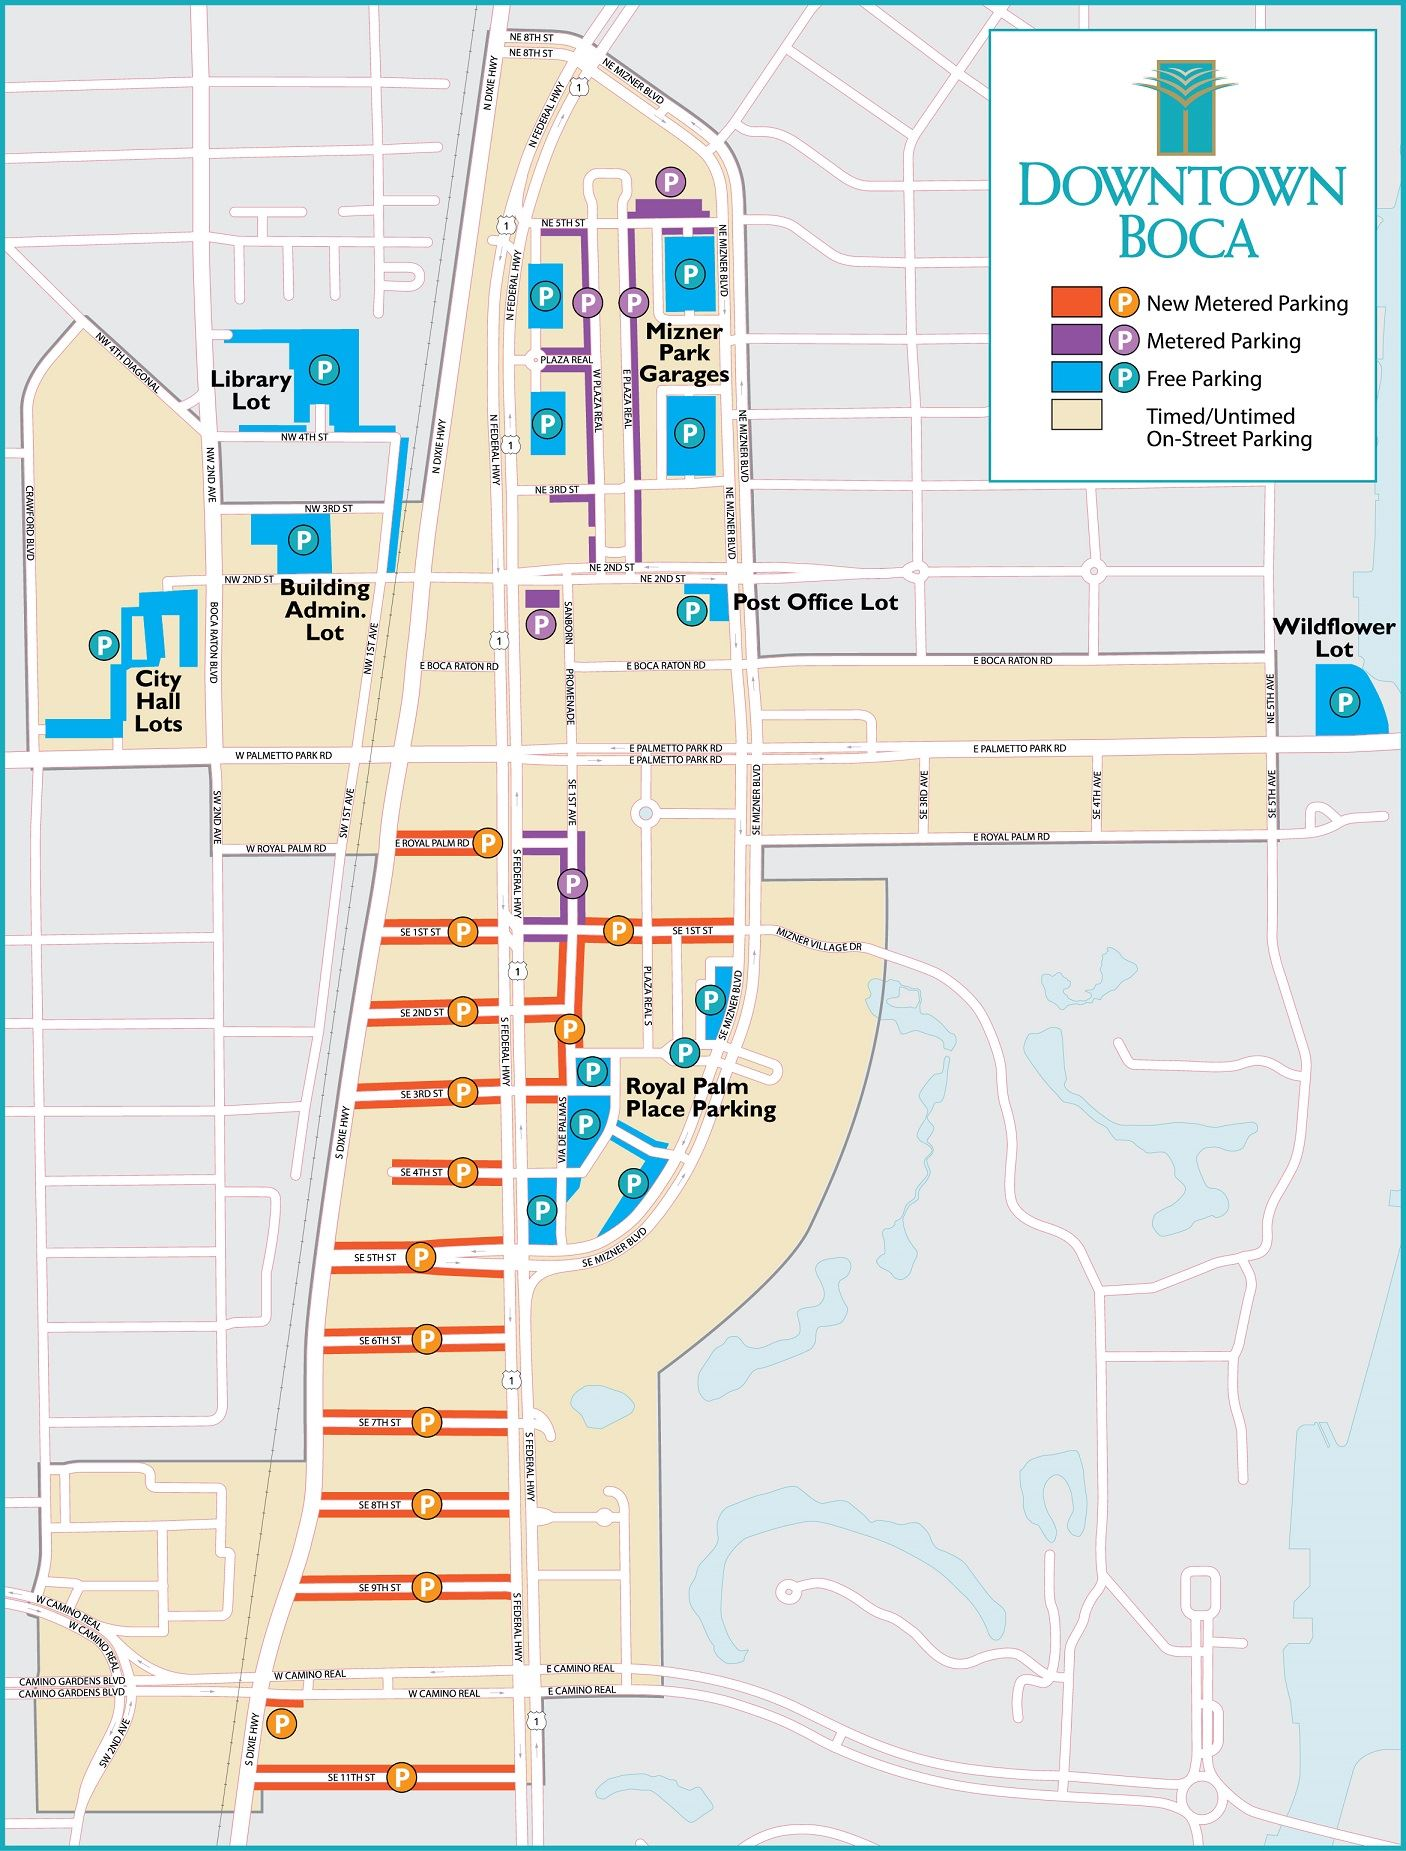 Downtown Boca Parking Map 7-29-20